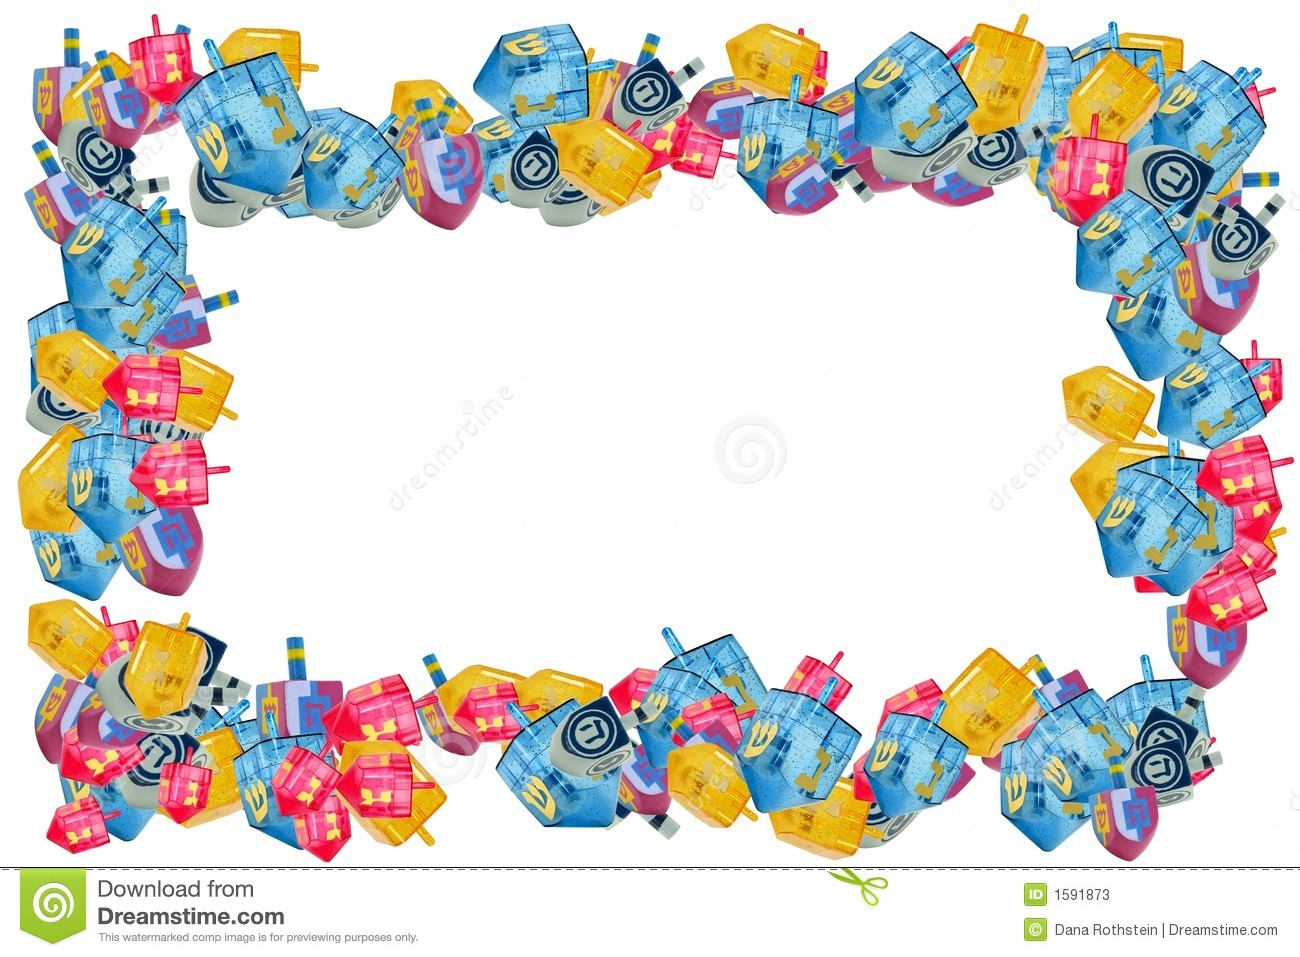 Various Size Shapes and Color Driedels - Chanukah Border.